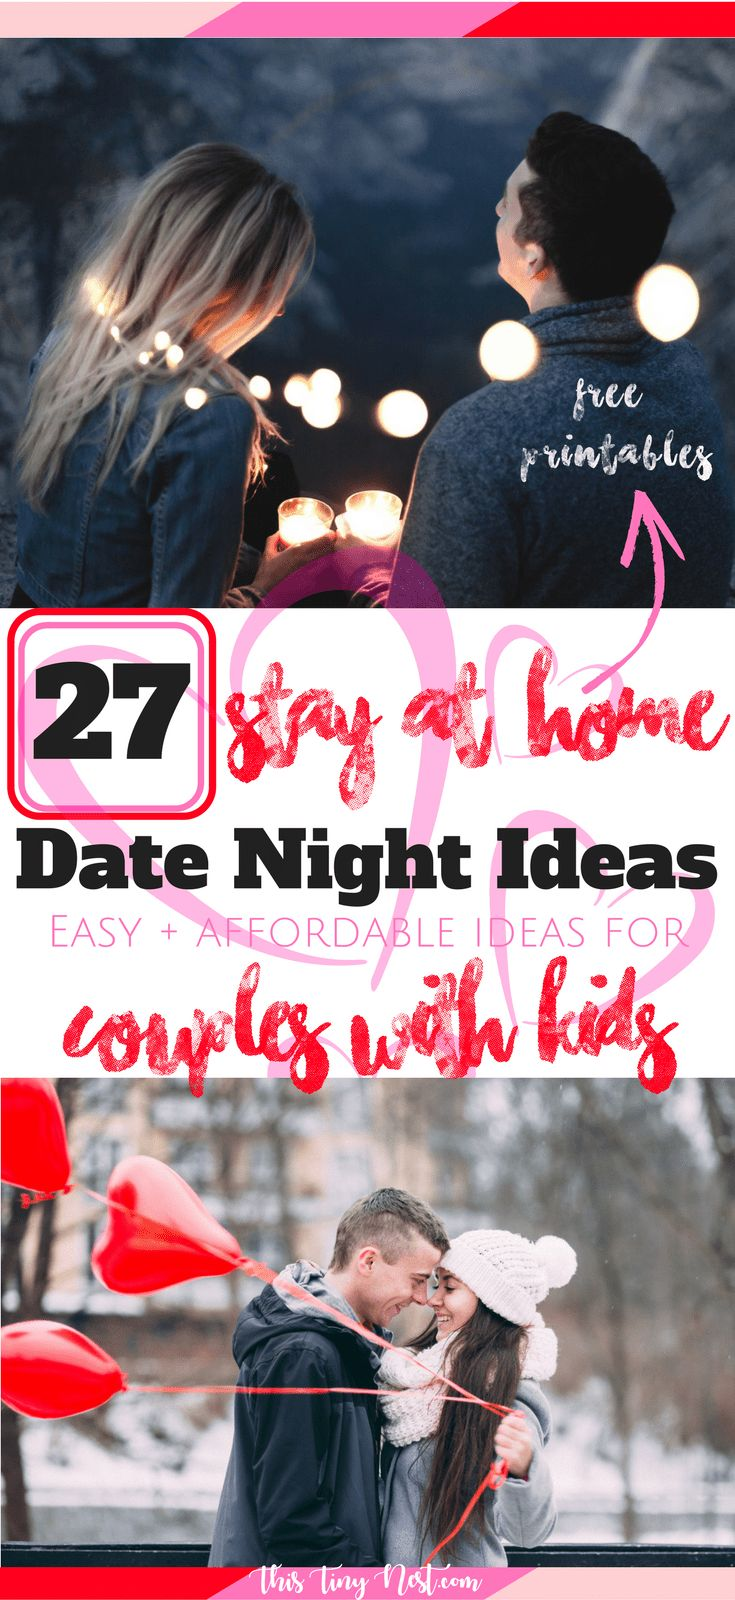 27 Stay-At-Home Date Night Ideas For Couples With Kids (Easy + Afforable!) #datenight #valentinesdaydate #datenightideas #cheapdateideas #datenightin #datenightathome #stayathome #coupleswithkids